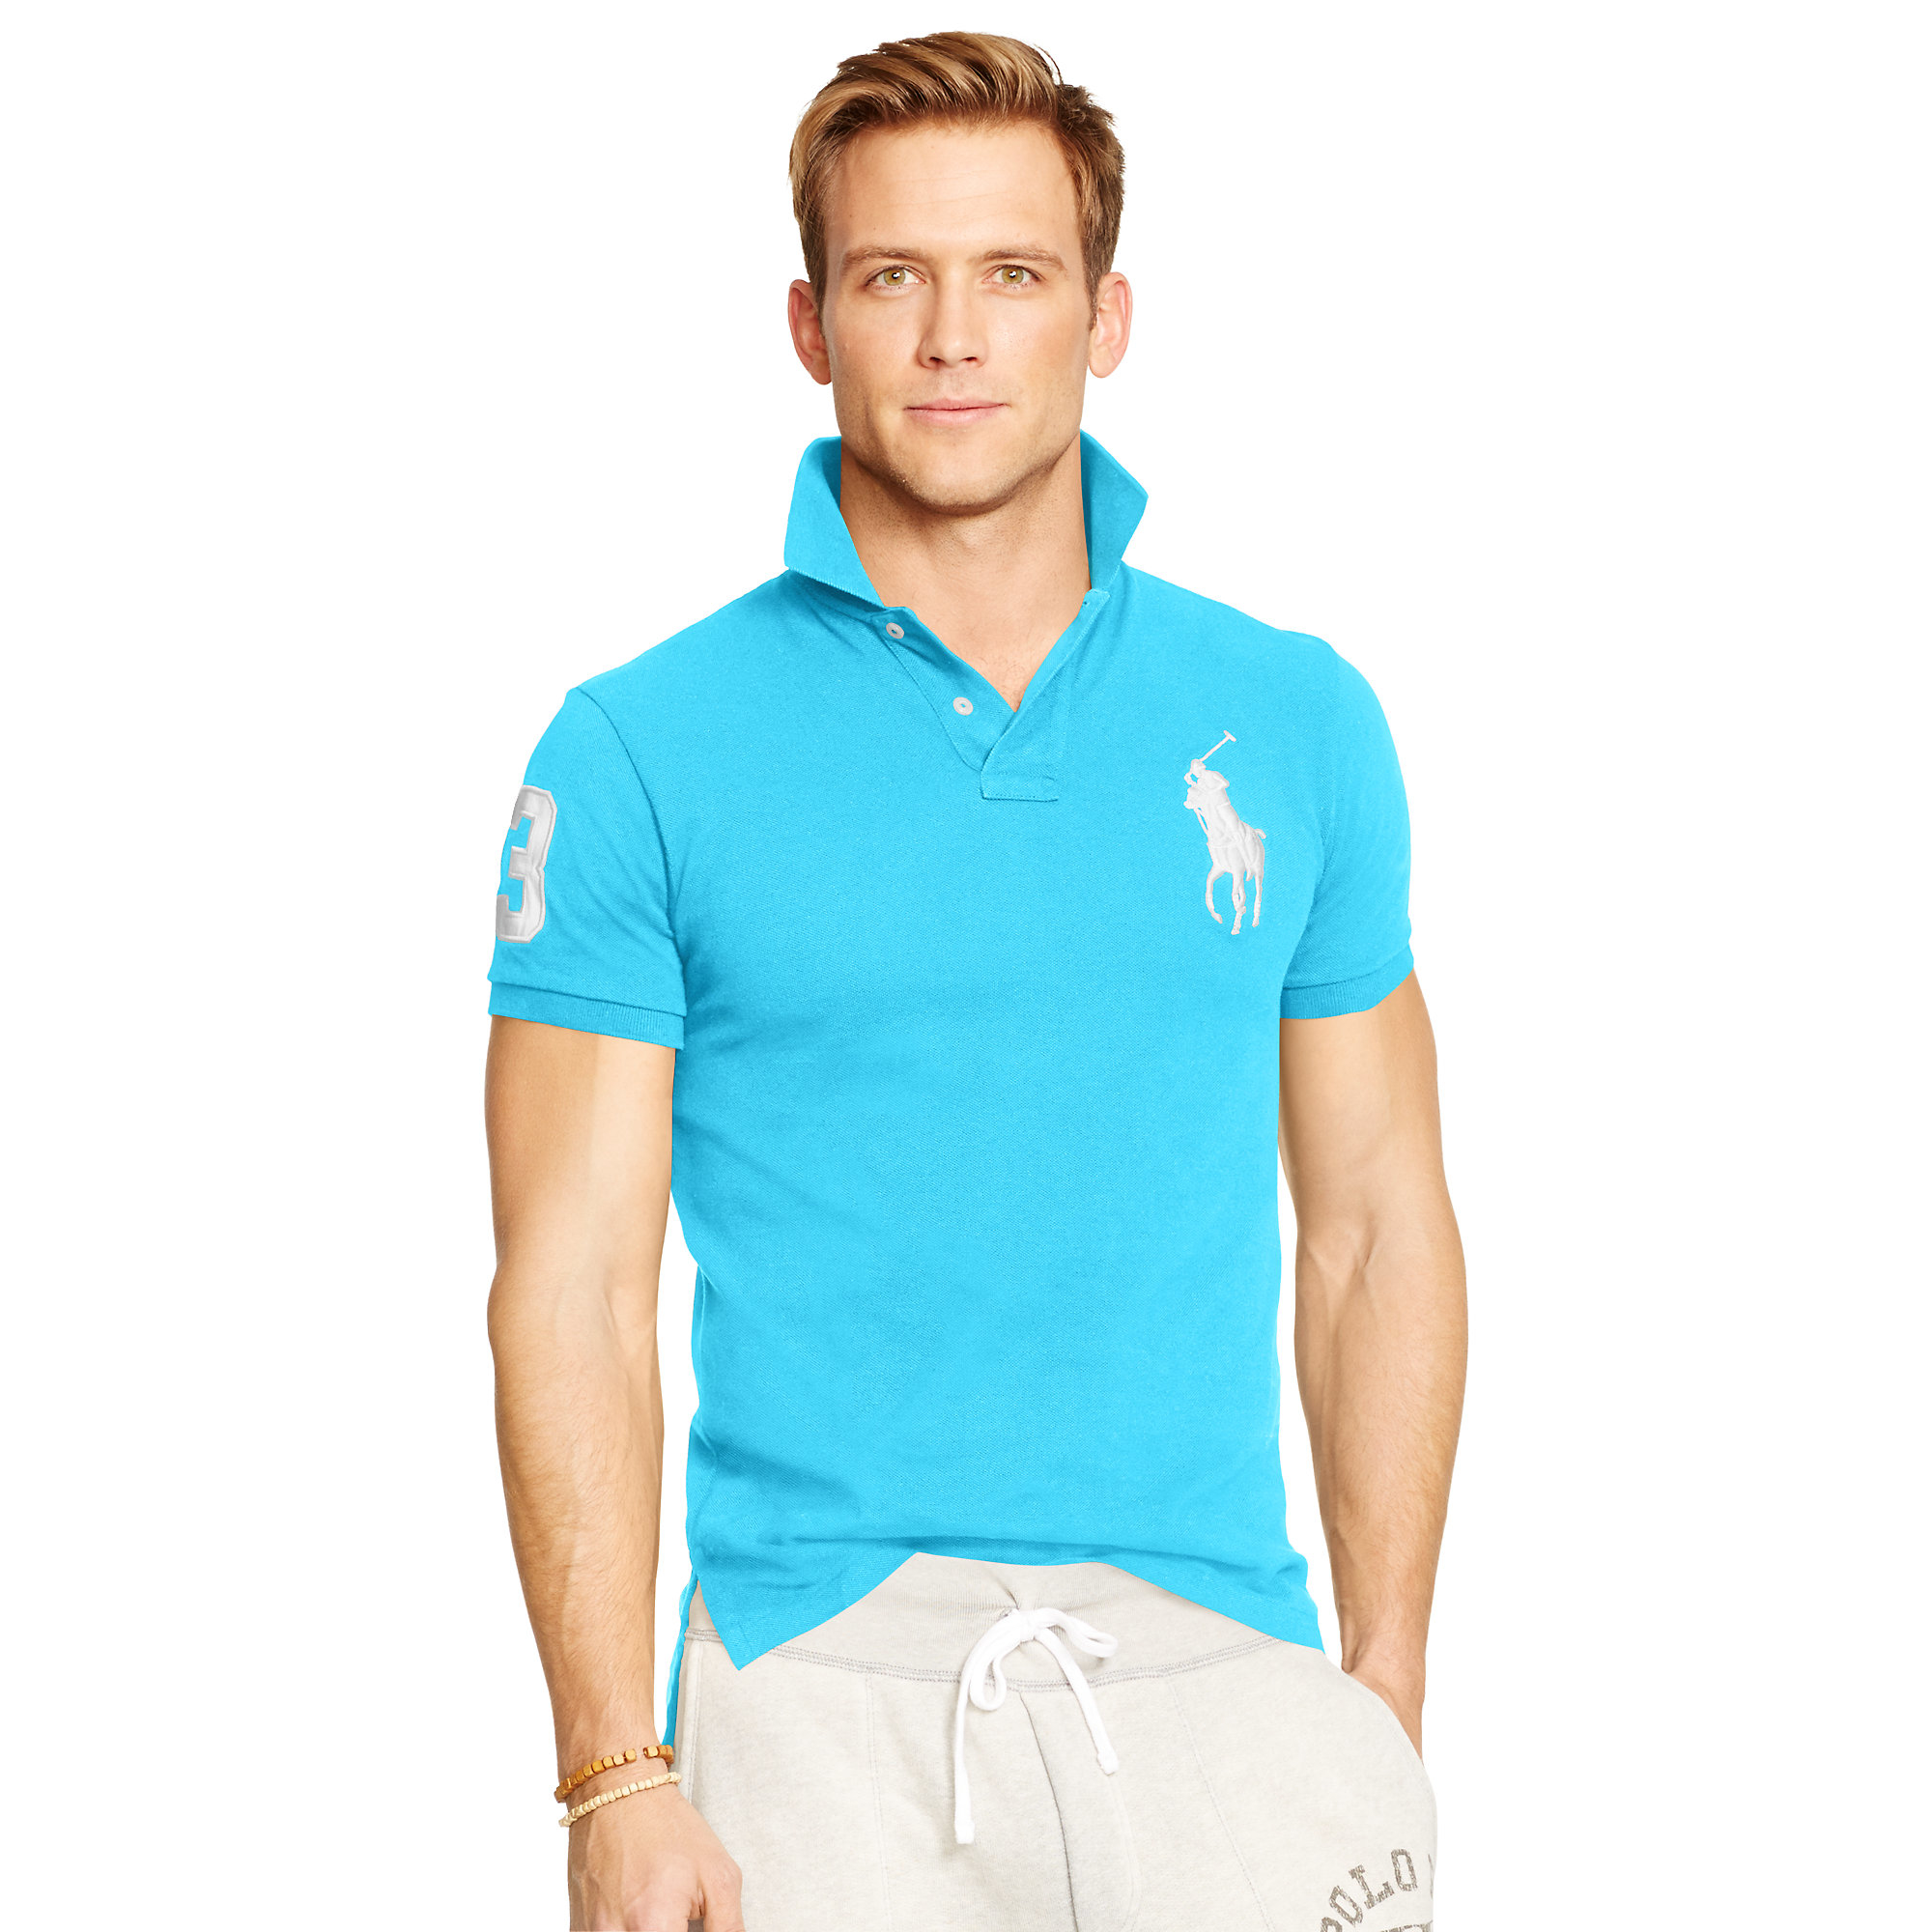 lyst polo ralph lauren custom fit big pony polo in blue for men. Black Bedroom Furniture Sets. Home Design Ideas